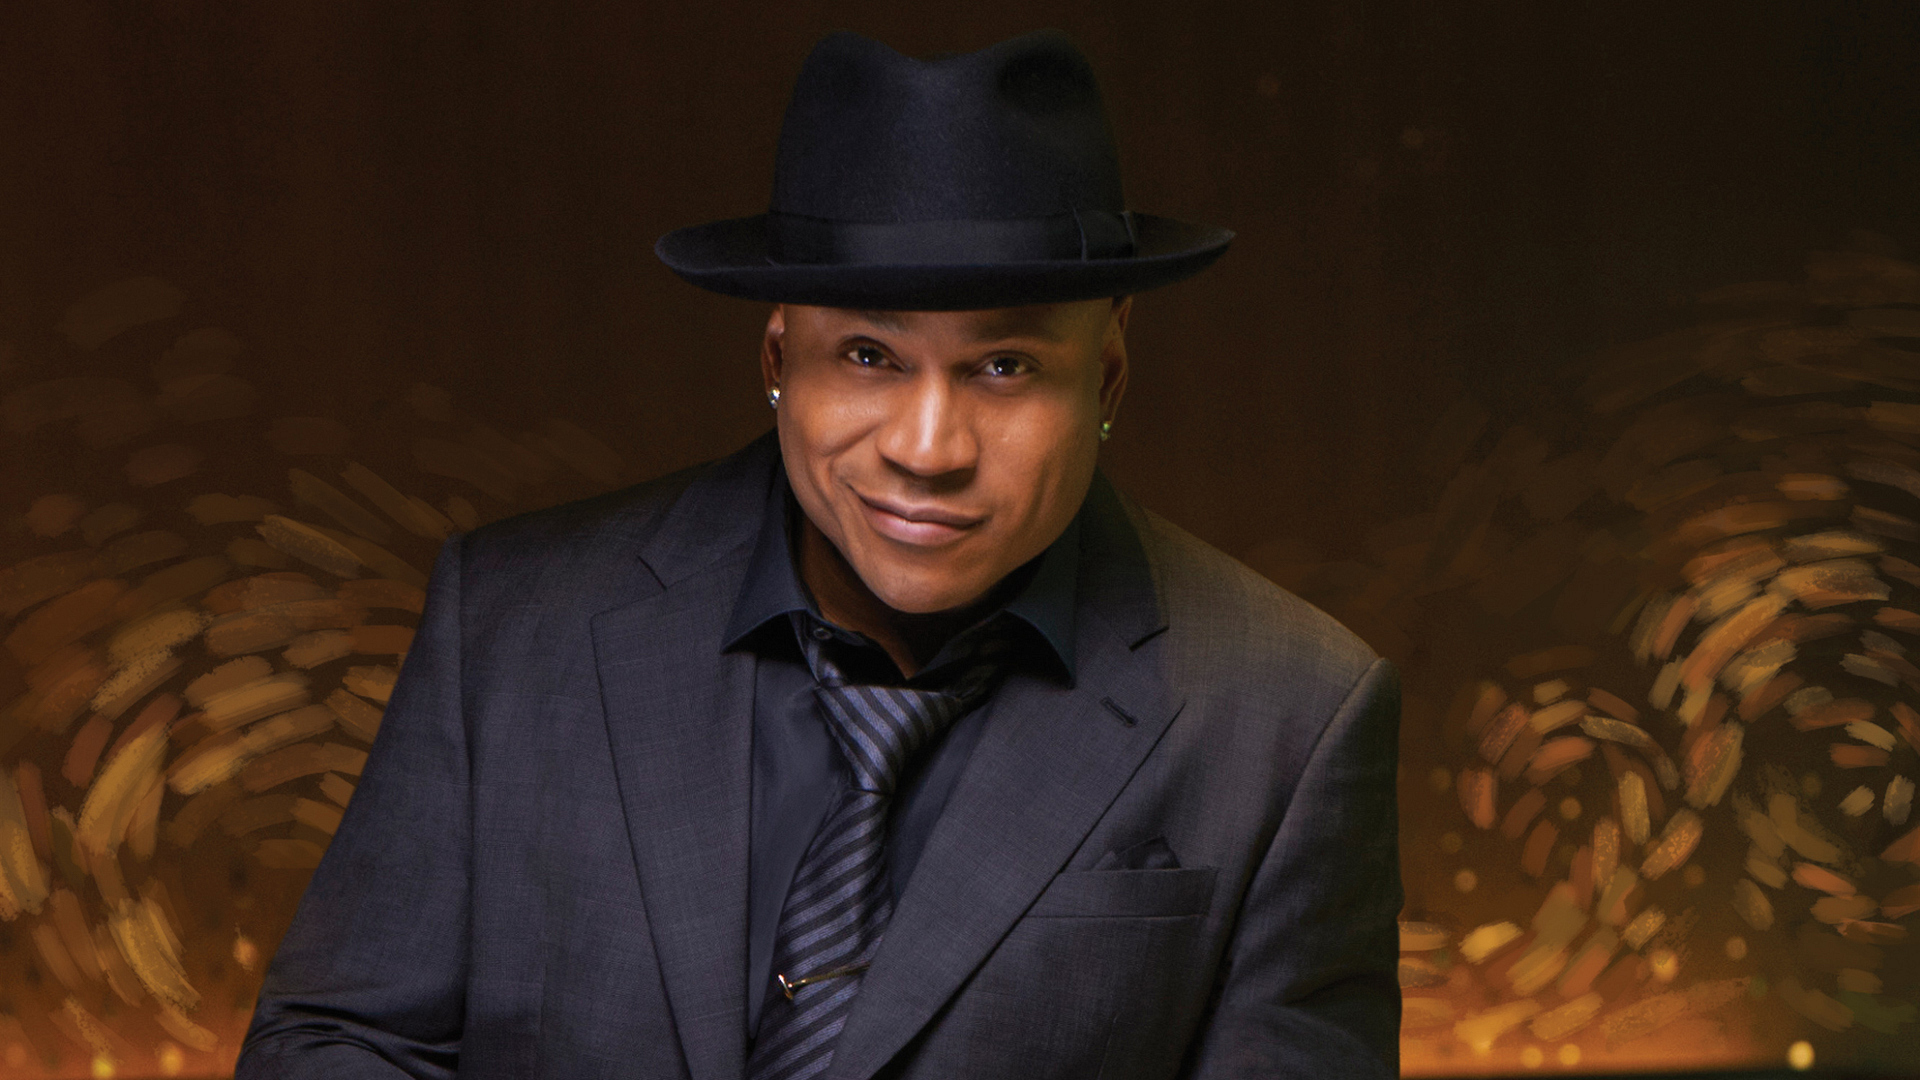 LL COOL J is dressed to impress